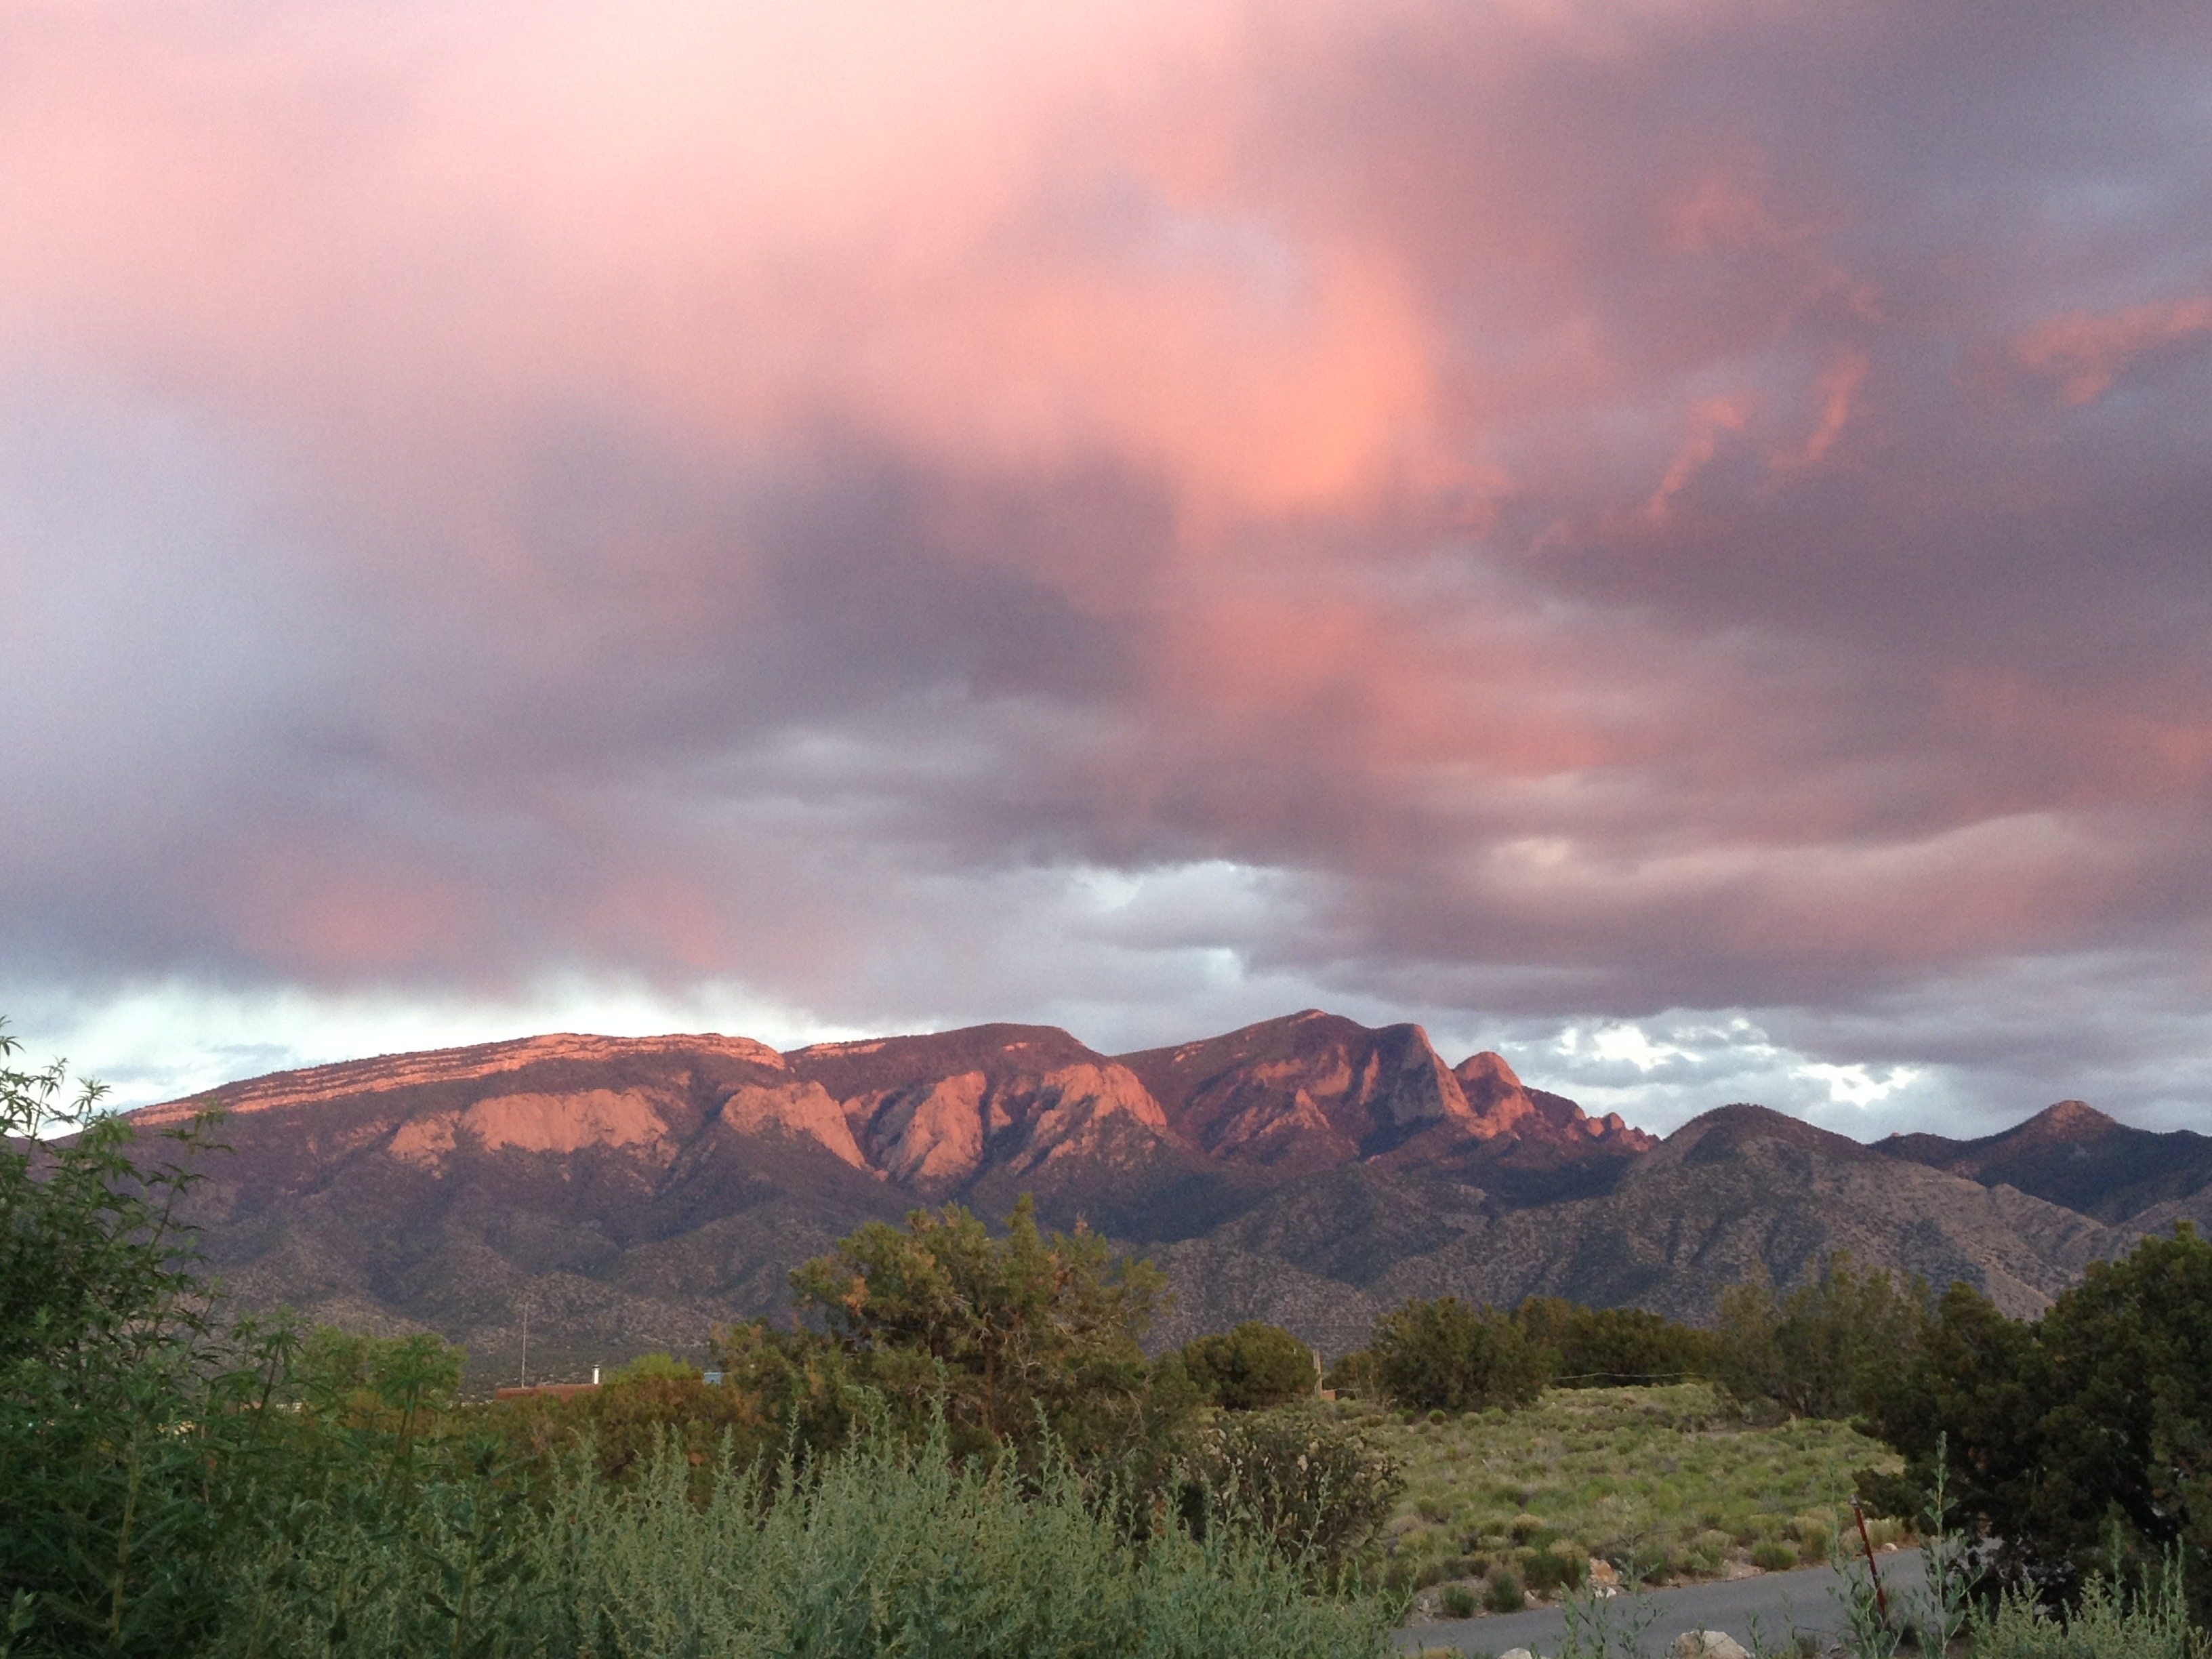 View of Sandia Mountains on a cloudy sunset, mountain face and clouds lit up bright pink.